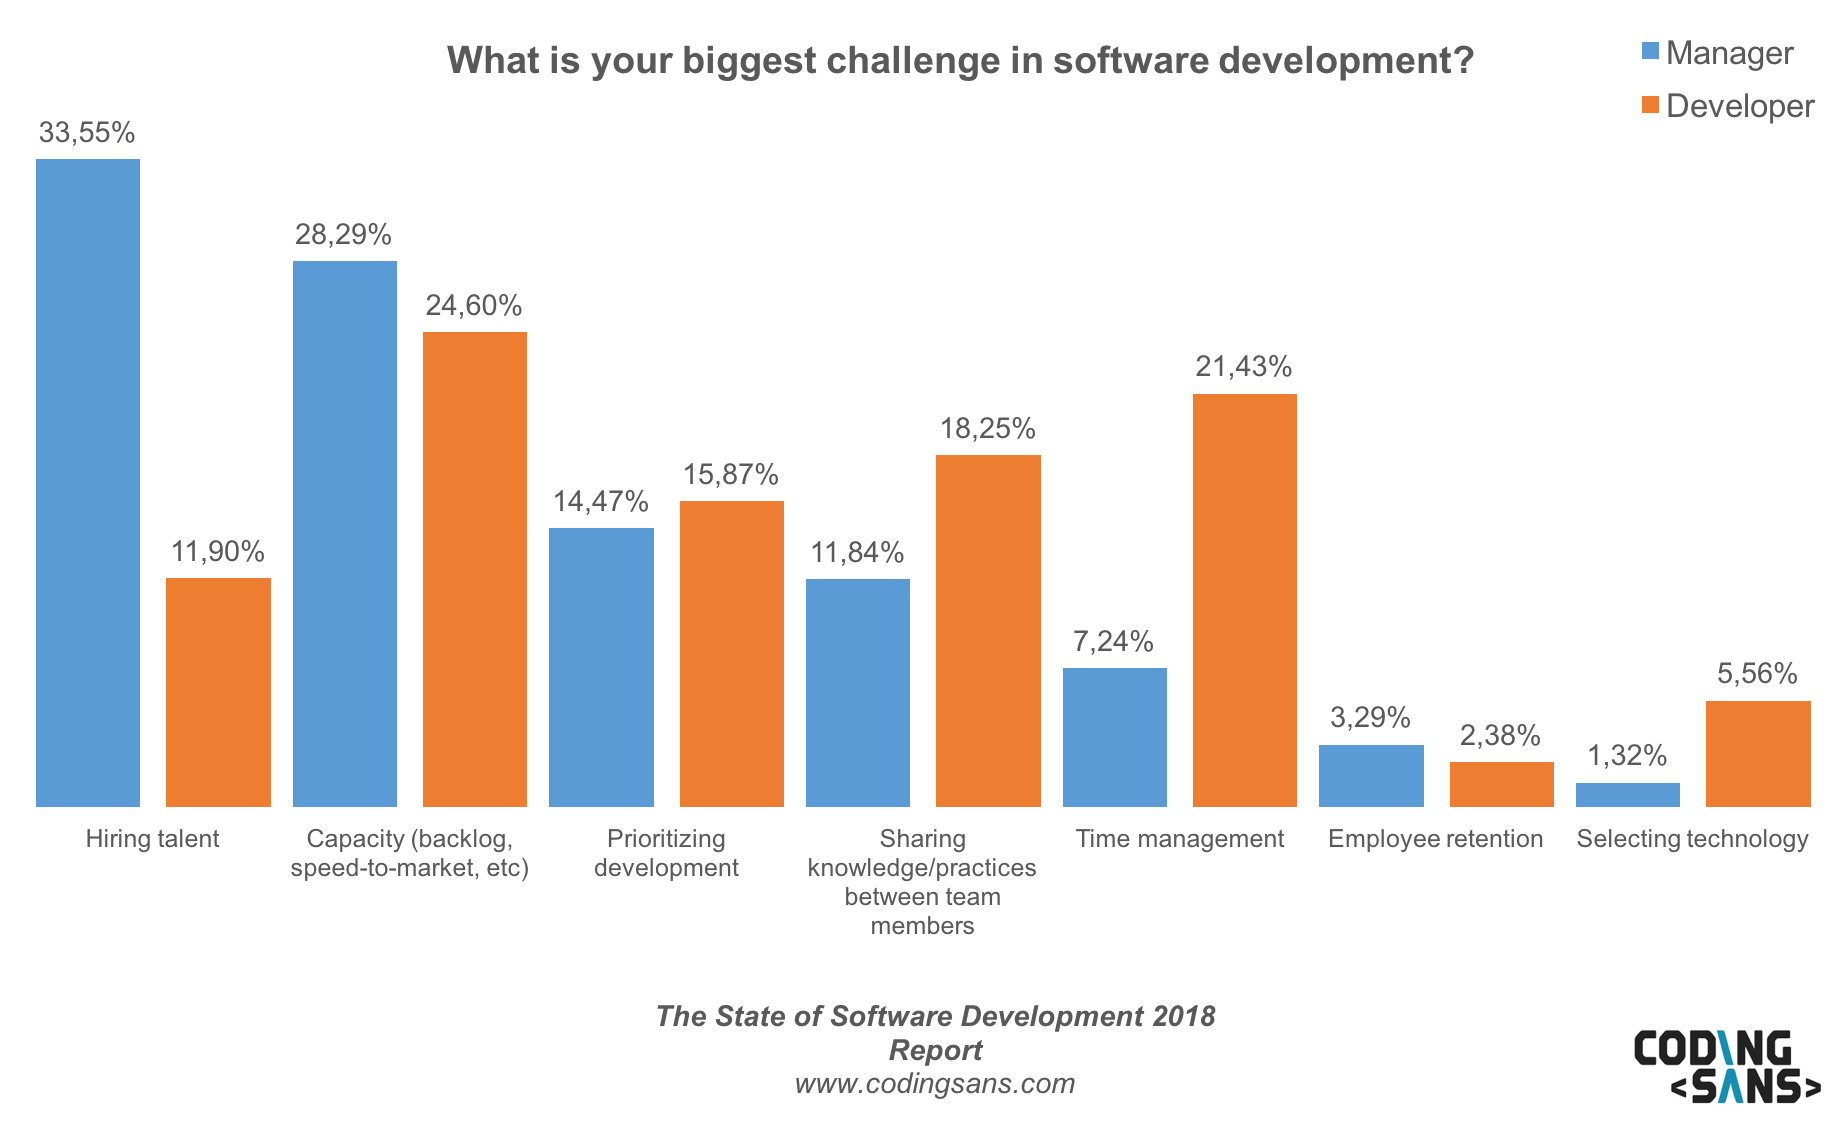 Developer Vs Manager Challenge